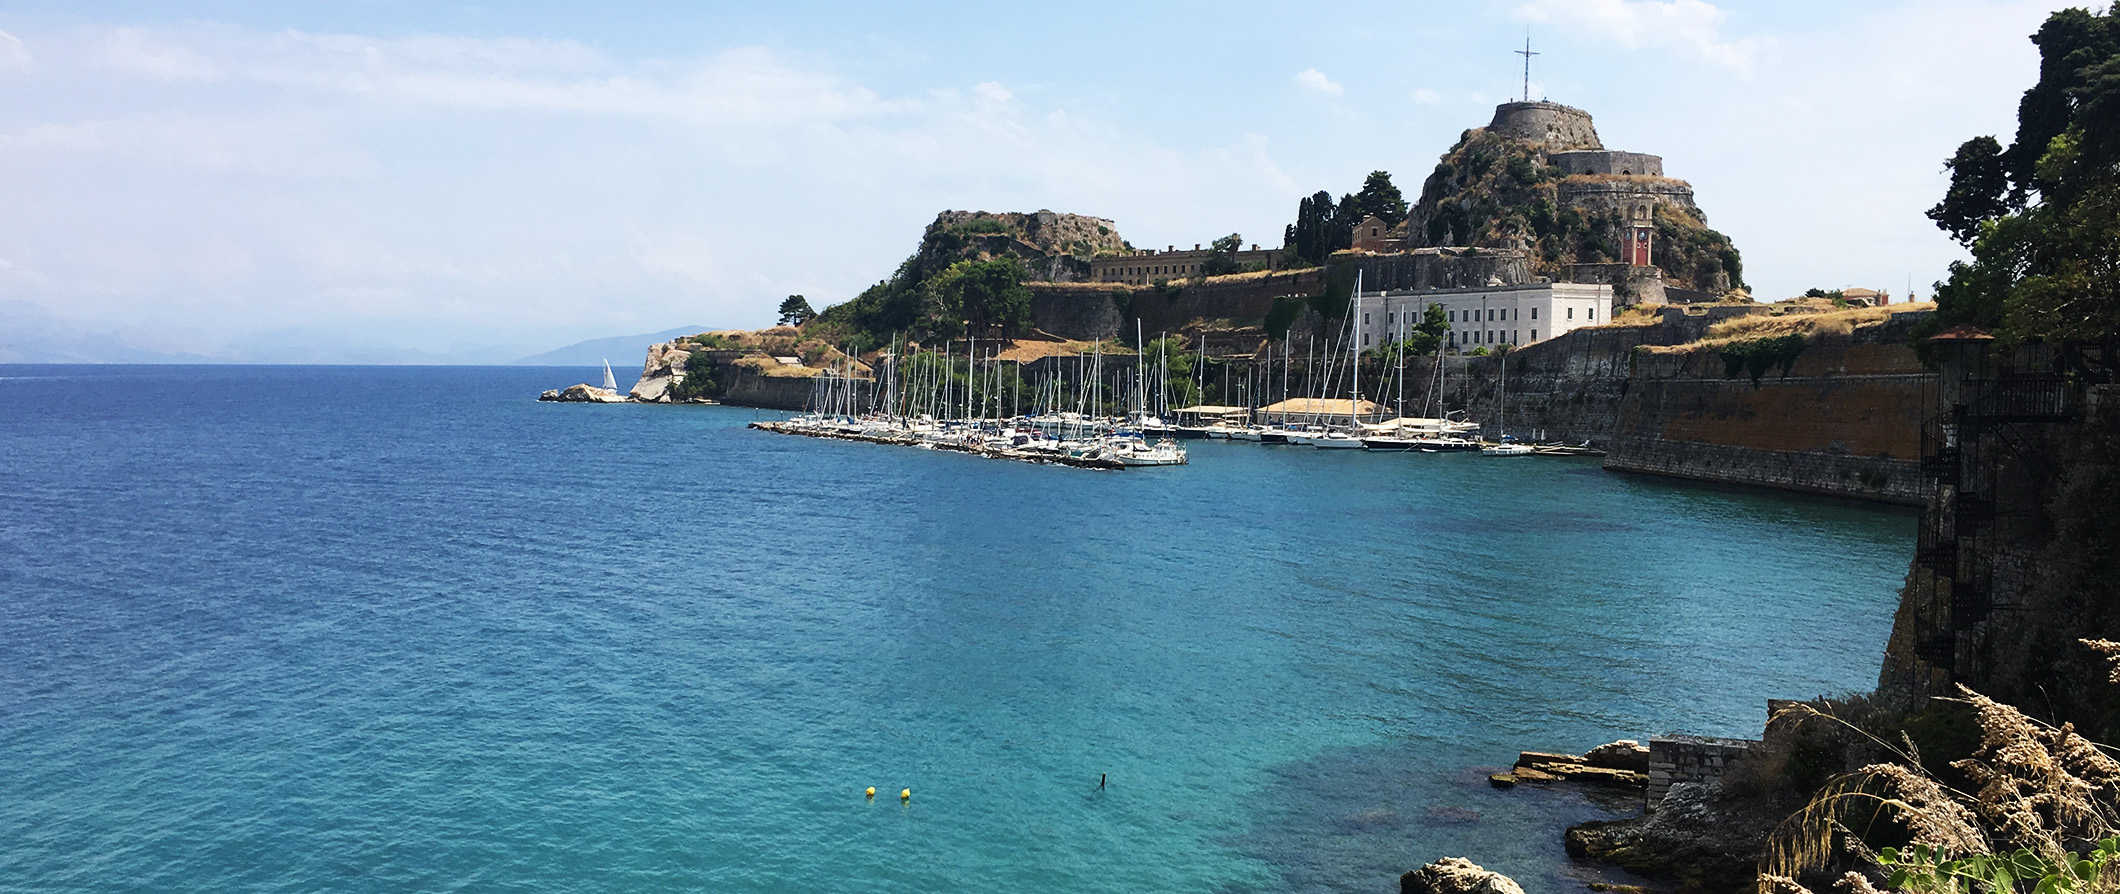 corfu travel guide what to see do costs ways to save